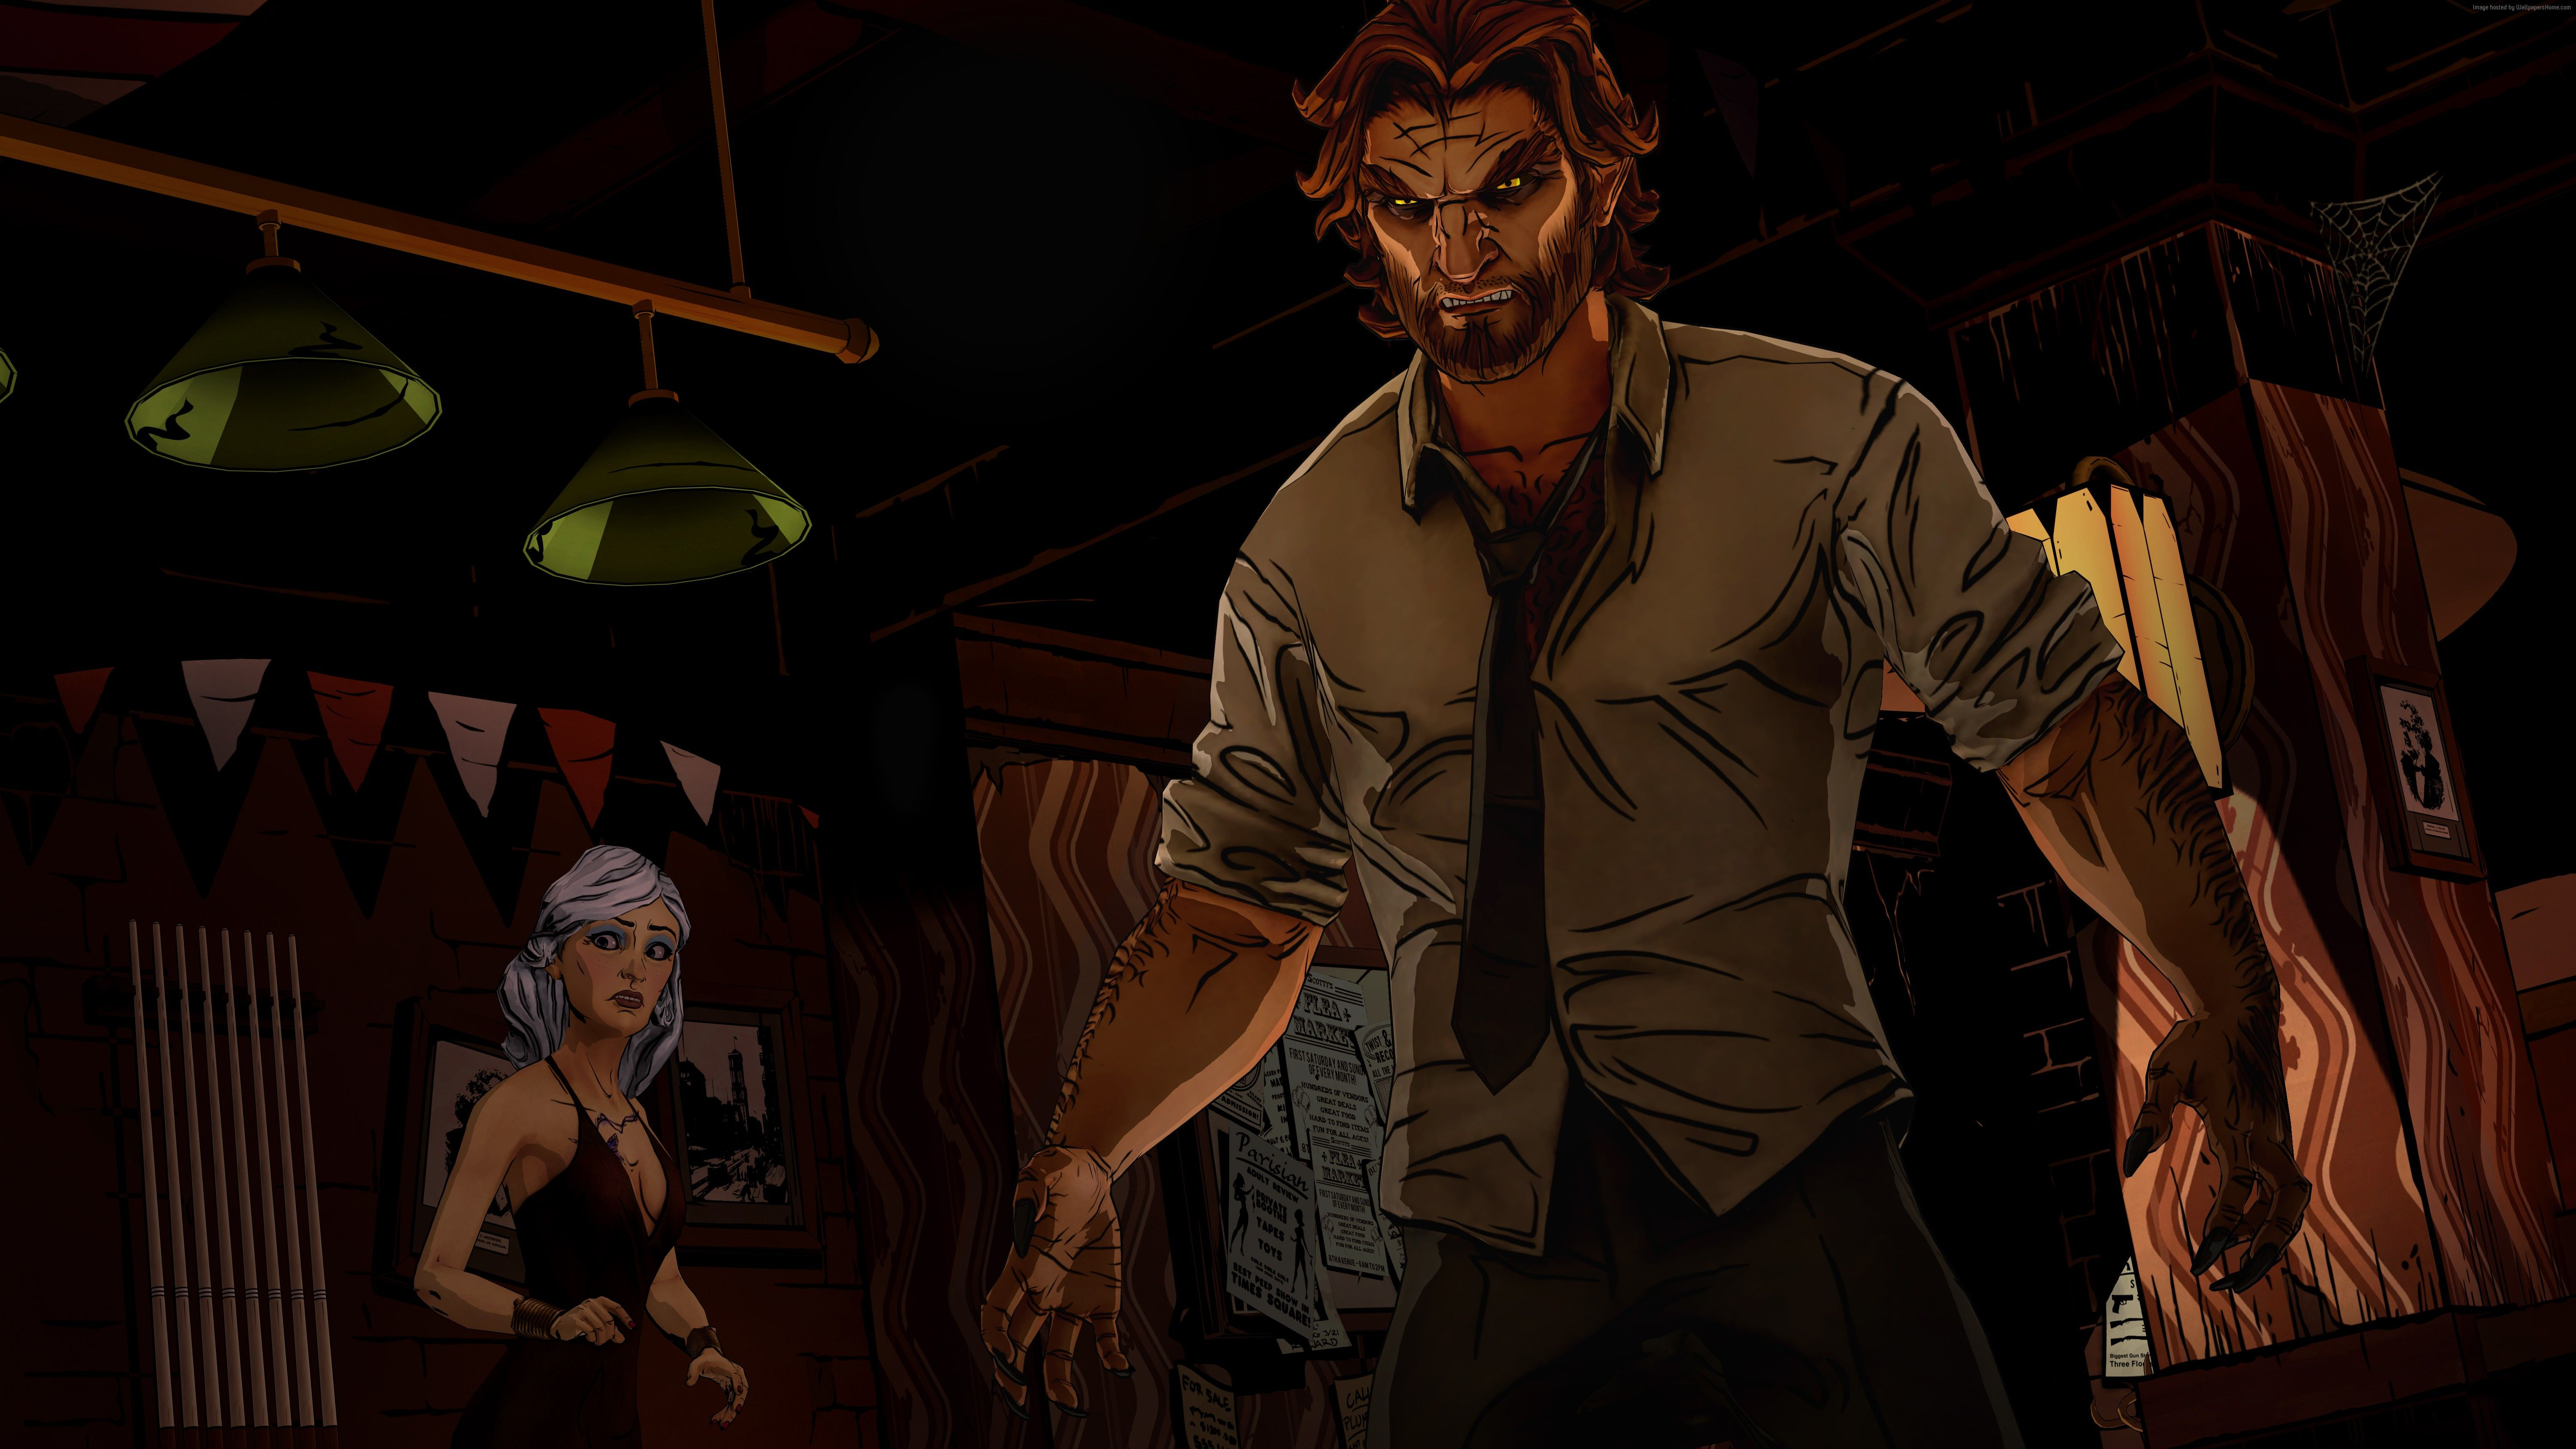 Wallpapers The Wolf Among Us, game, Adventure games, Fables, Bigby